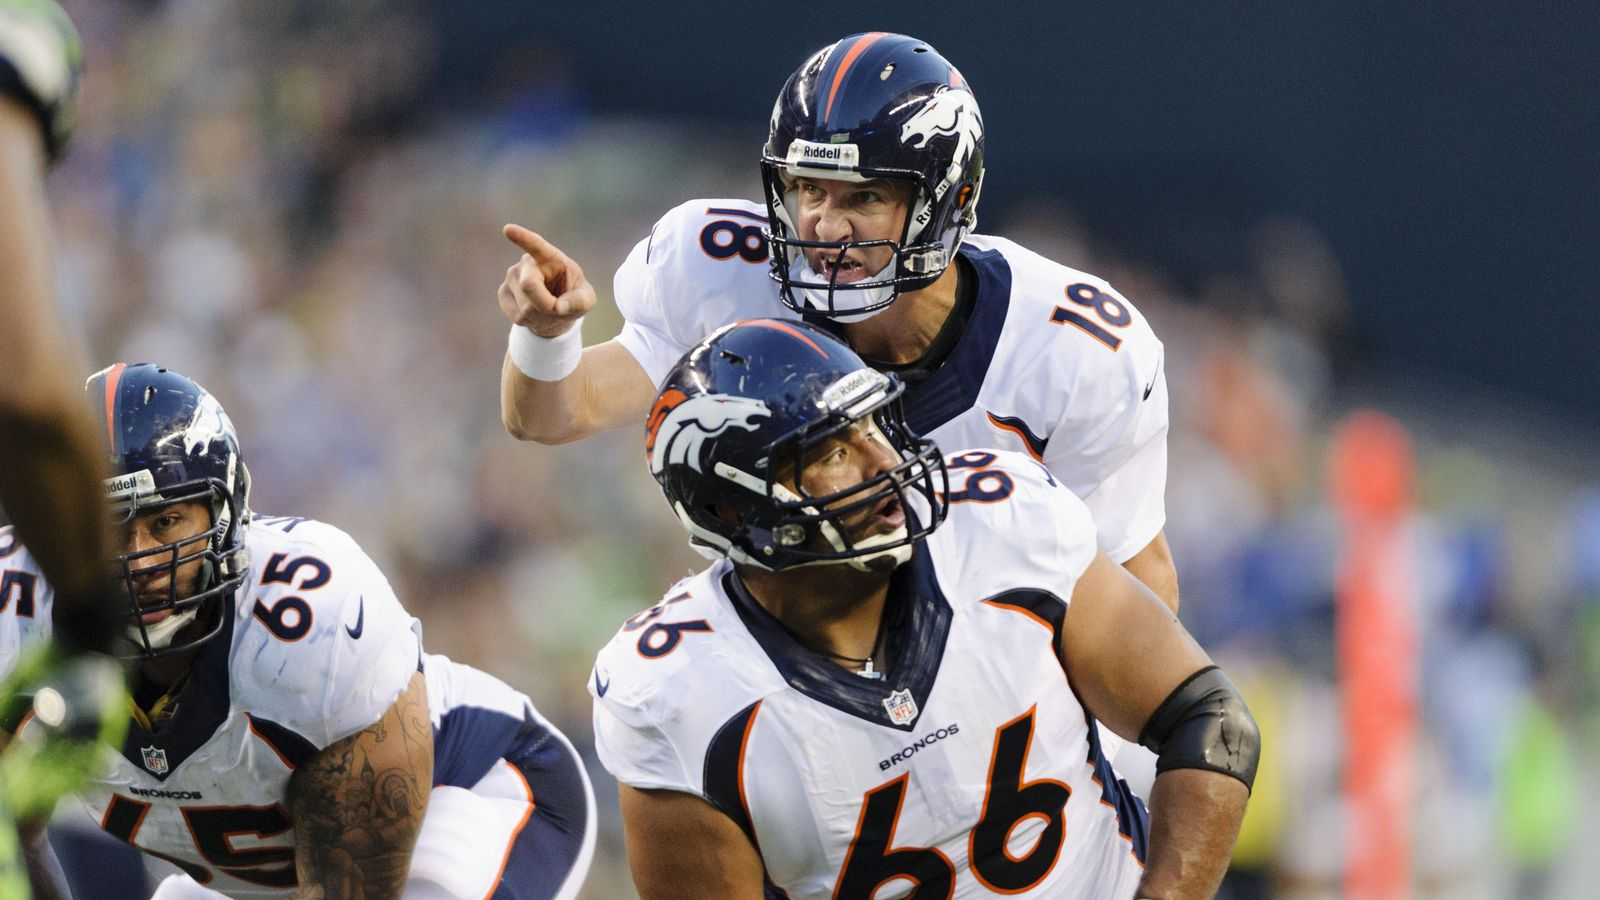 Broncos at Seahawks: Preseason play is meaningless, until